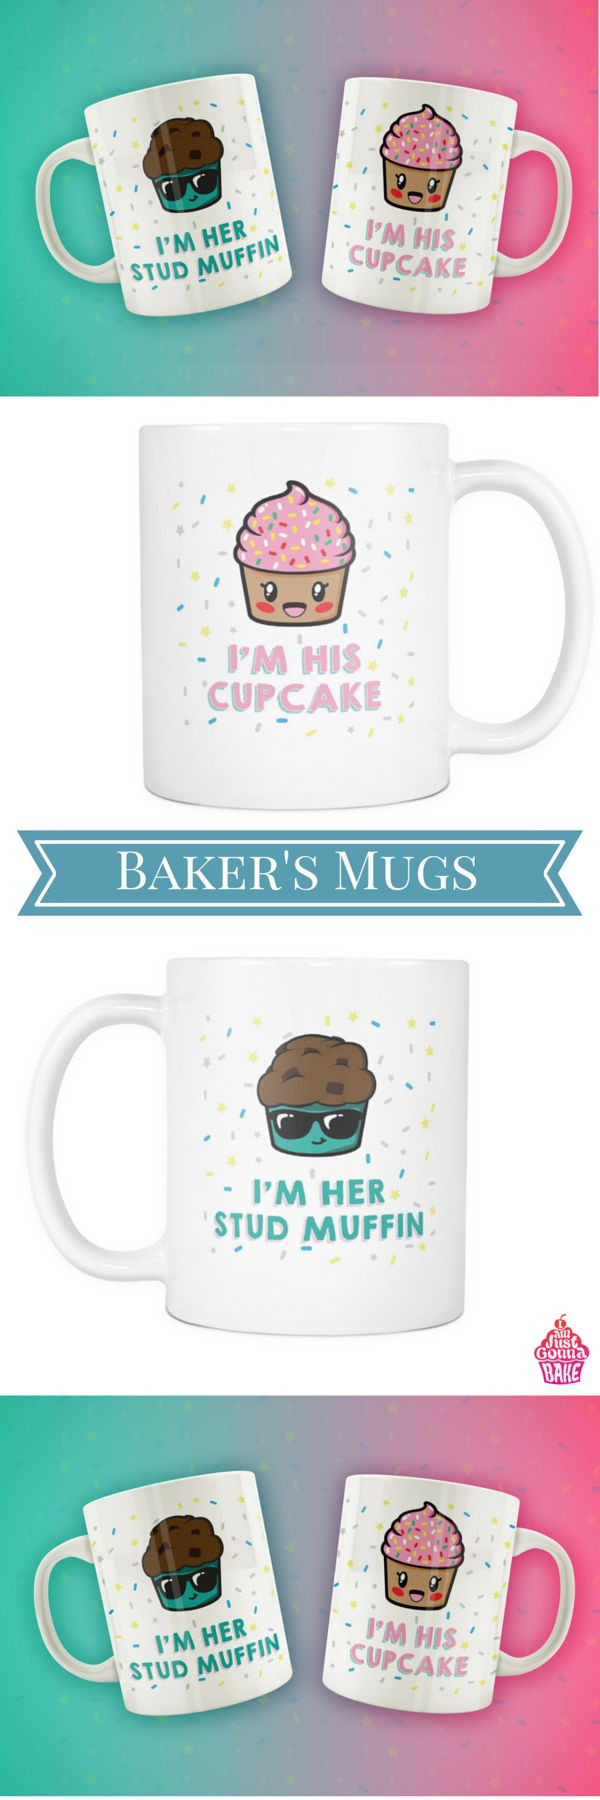 We know you love baking, but we are also pretty sure there is a significant other who supports you (well, maybe not always) :) These mugs are for you guys. Available here: https://www.iamjustgonnabake.com/products/cupcake-and-stud-muffin?variant=21664075907